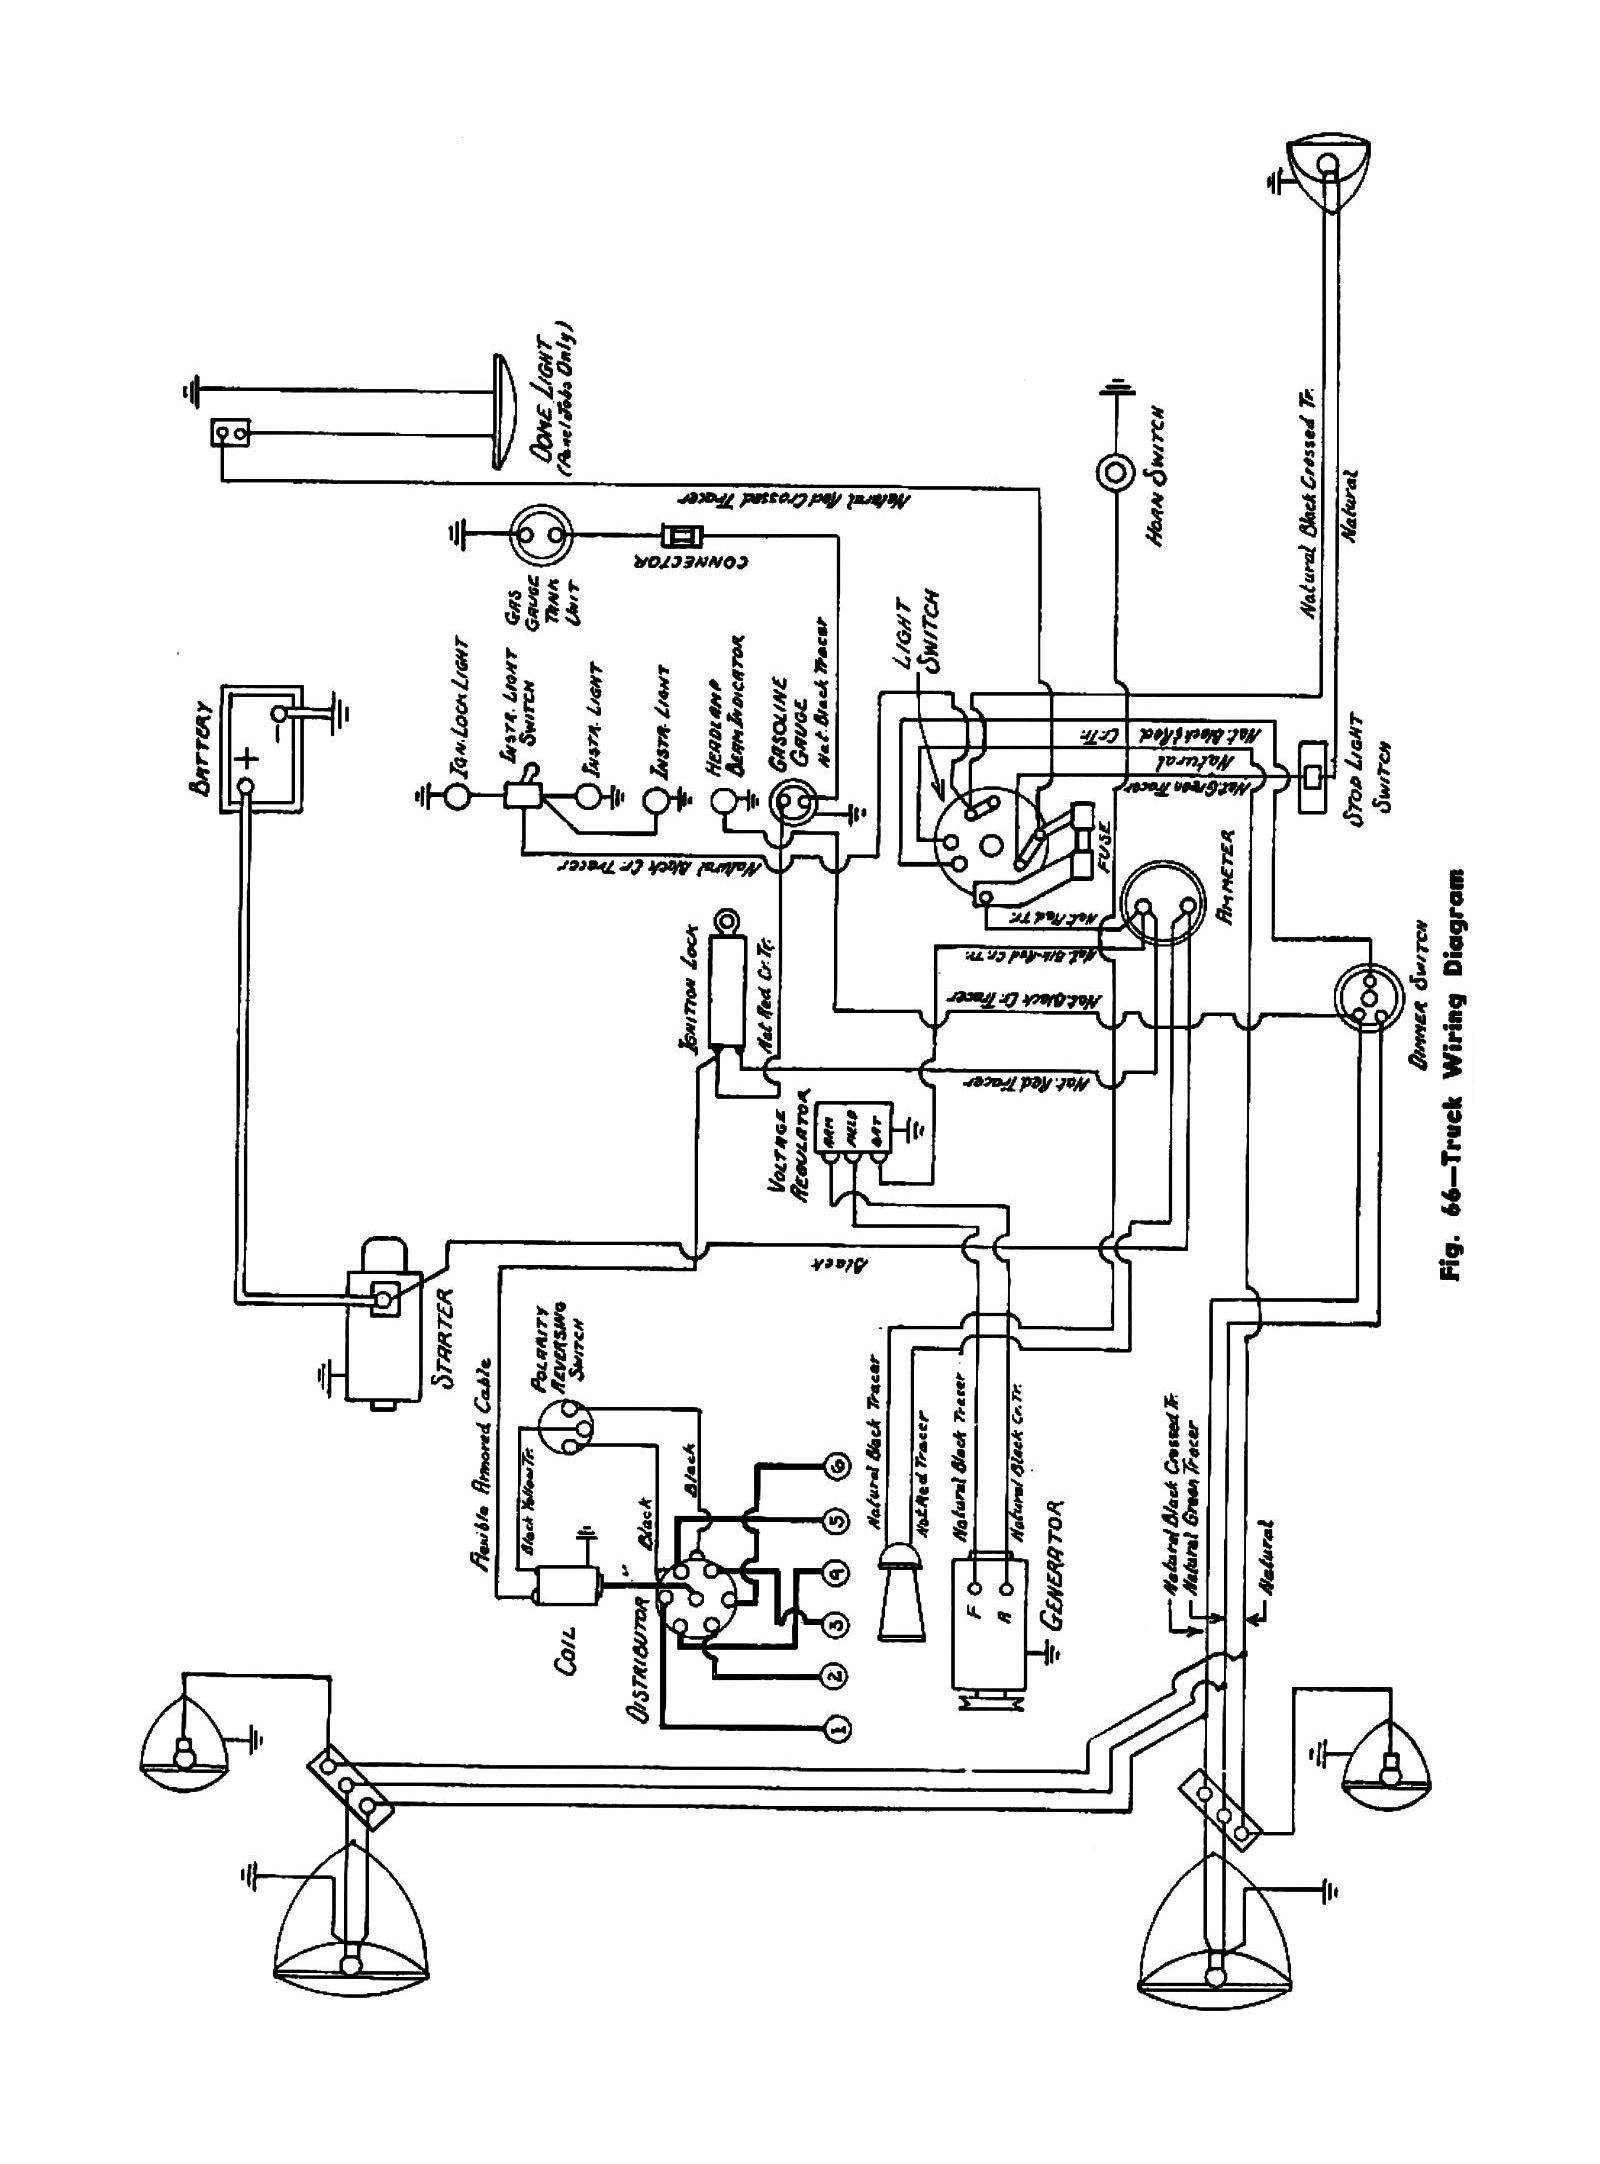 wiring diagram 1953 plymouth wiring diagram yer1953 dodge wiring diagram wiring diagram featured wiring diagram 1953 plymouth